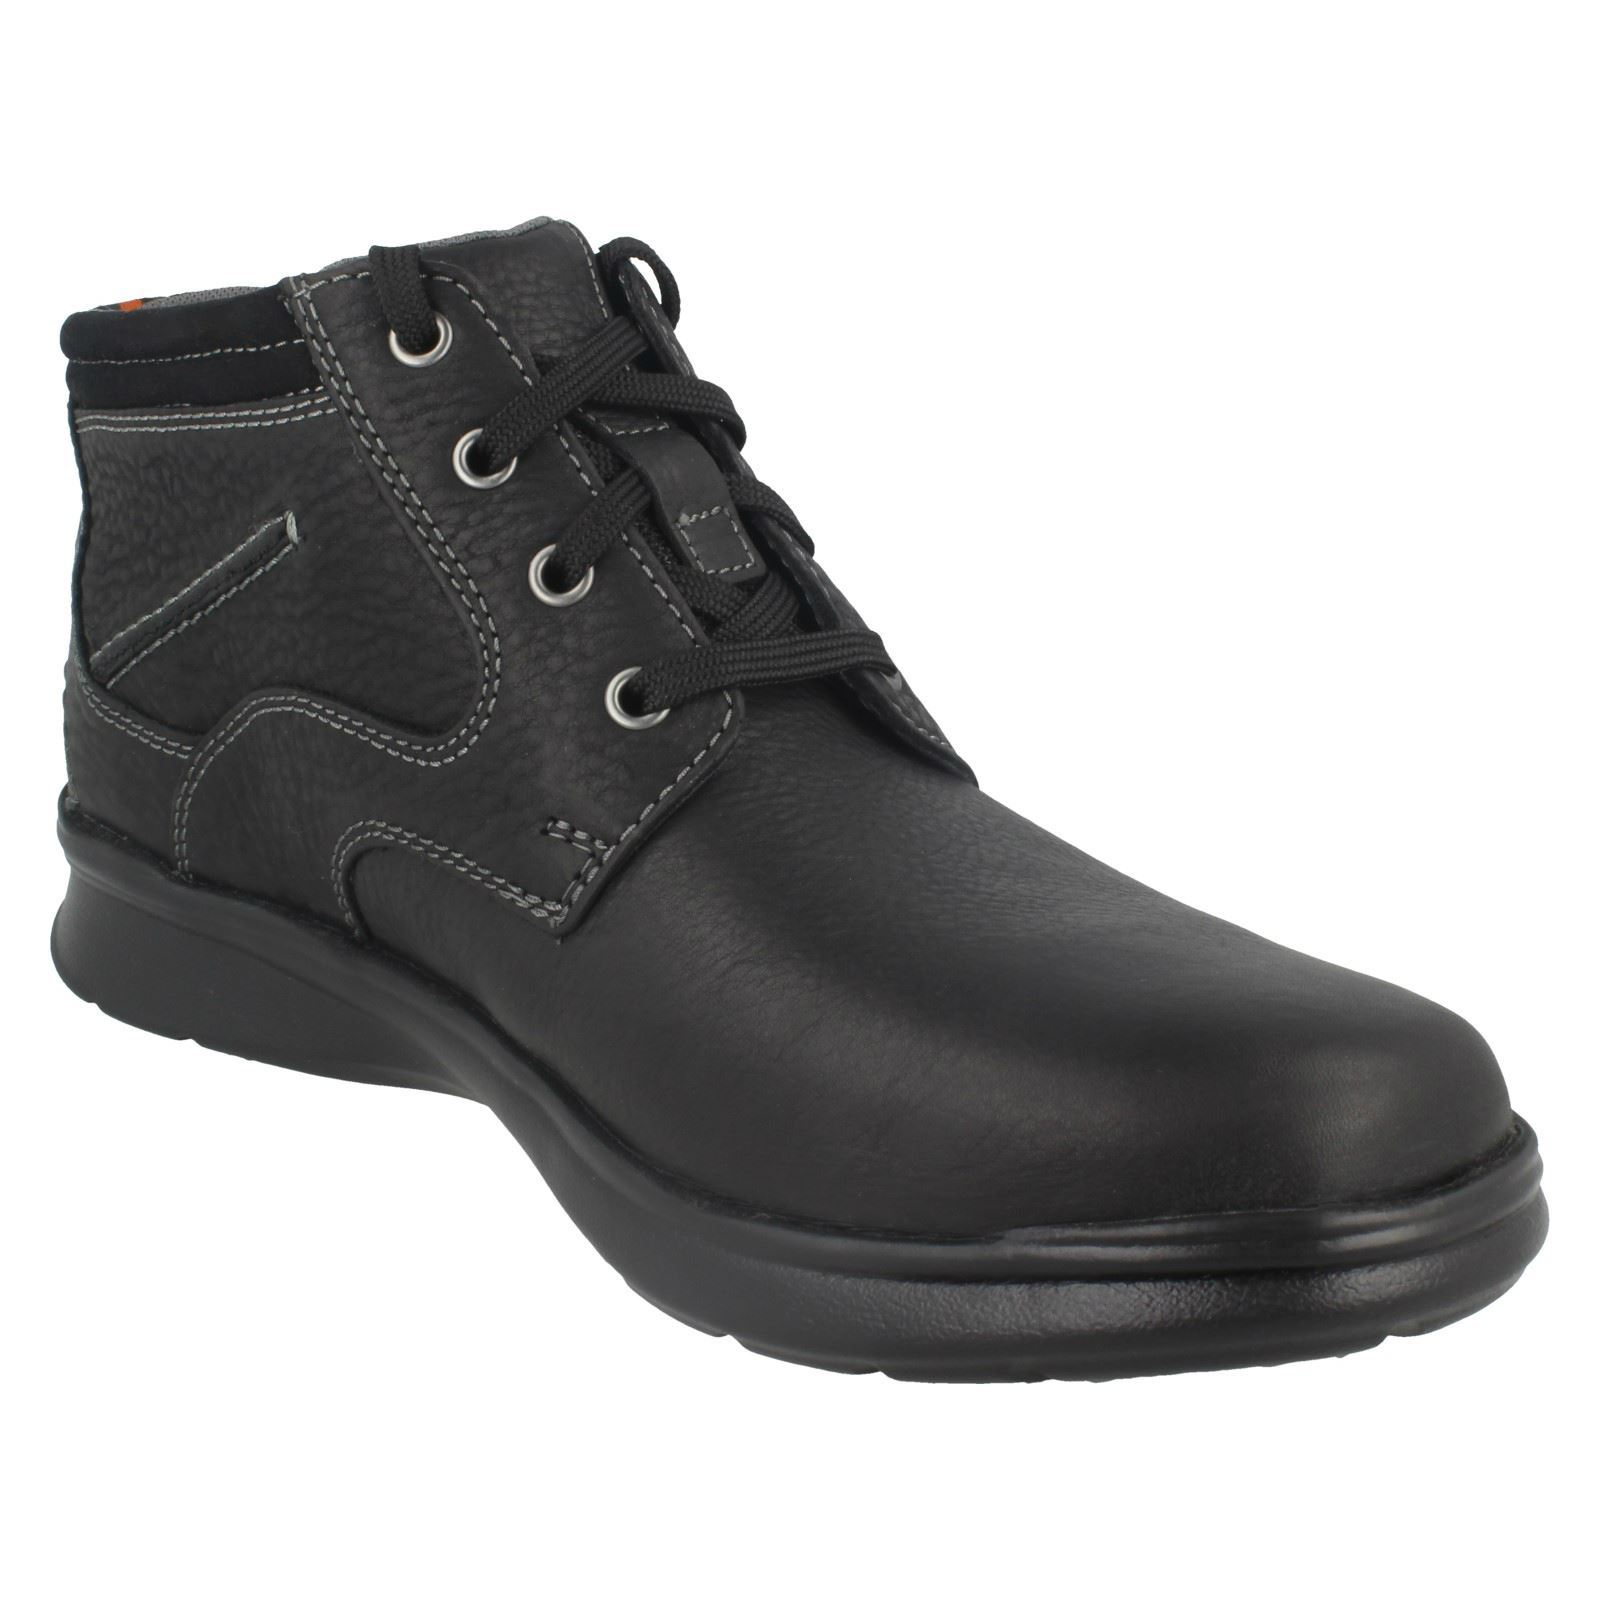 Mens-Clarks-Cotrell-Rise-Casual-Lace-Up-Ankle-Boots thumbnail 8